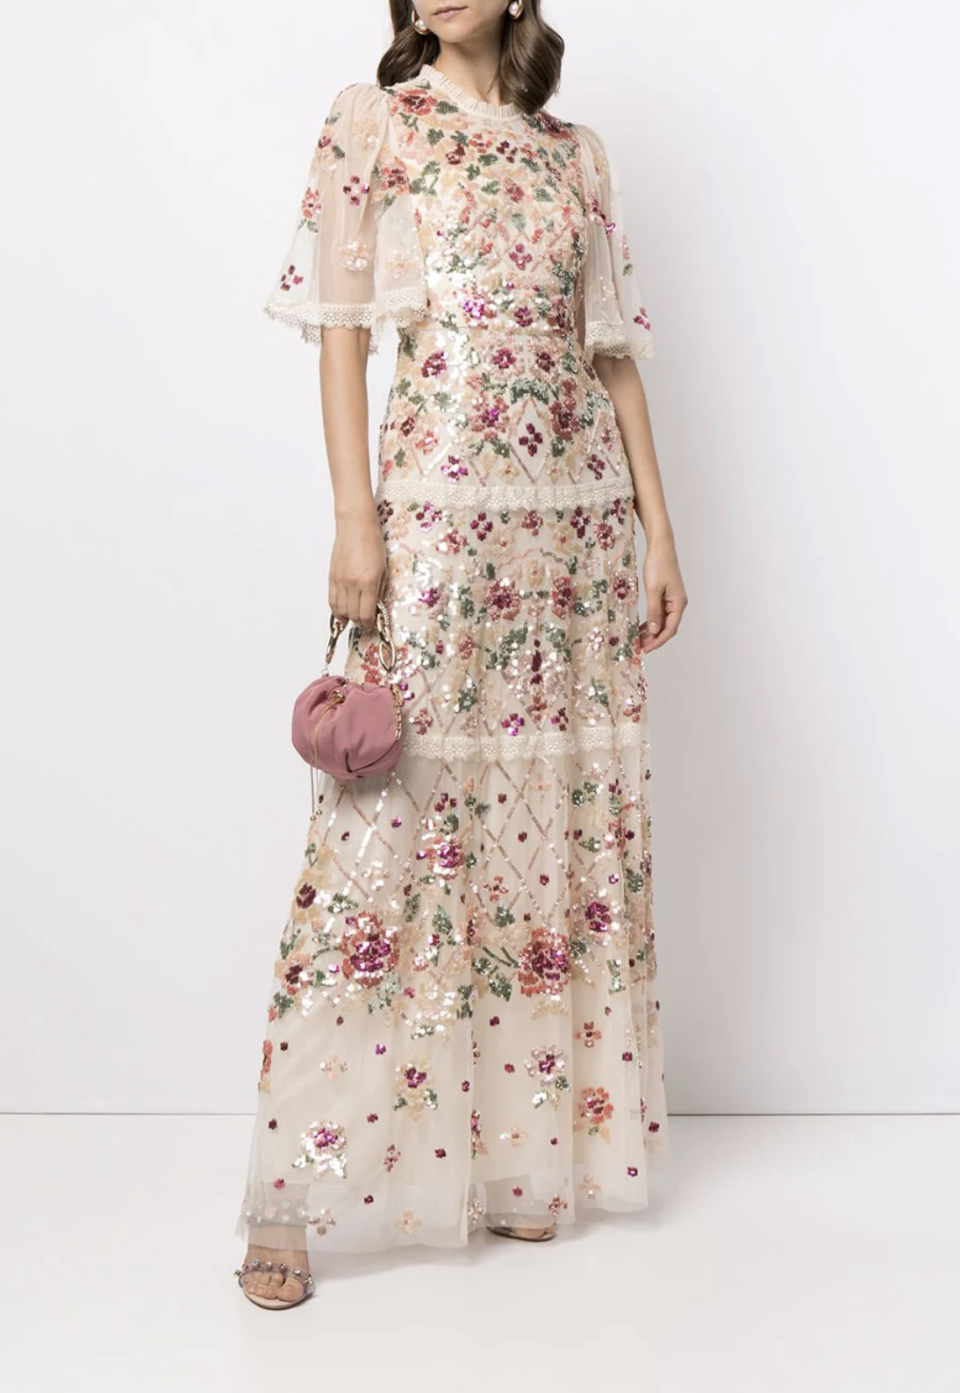 Needle & Thread Embroidered Floral Maxi Dress - FarFetch.